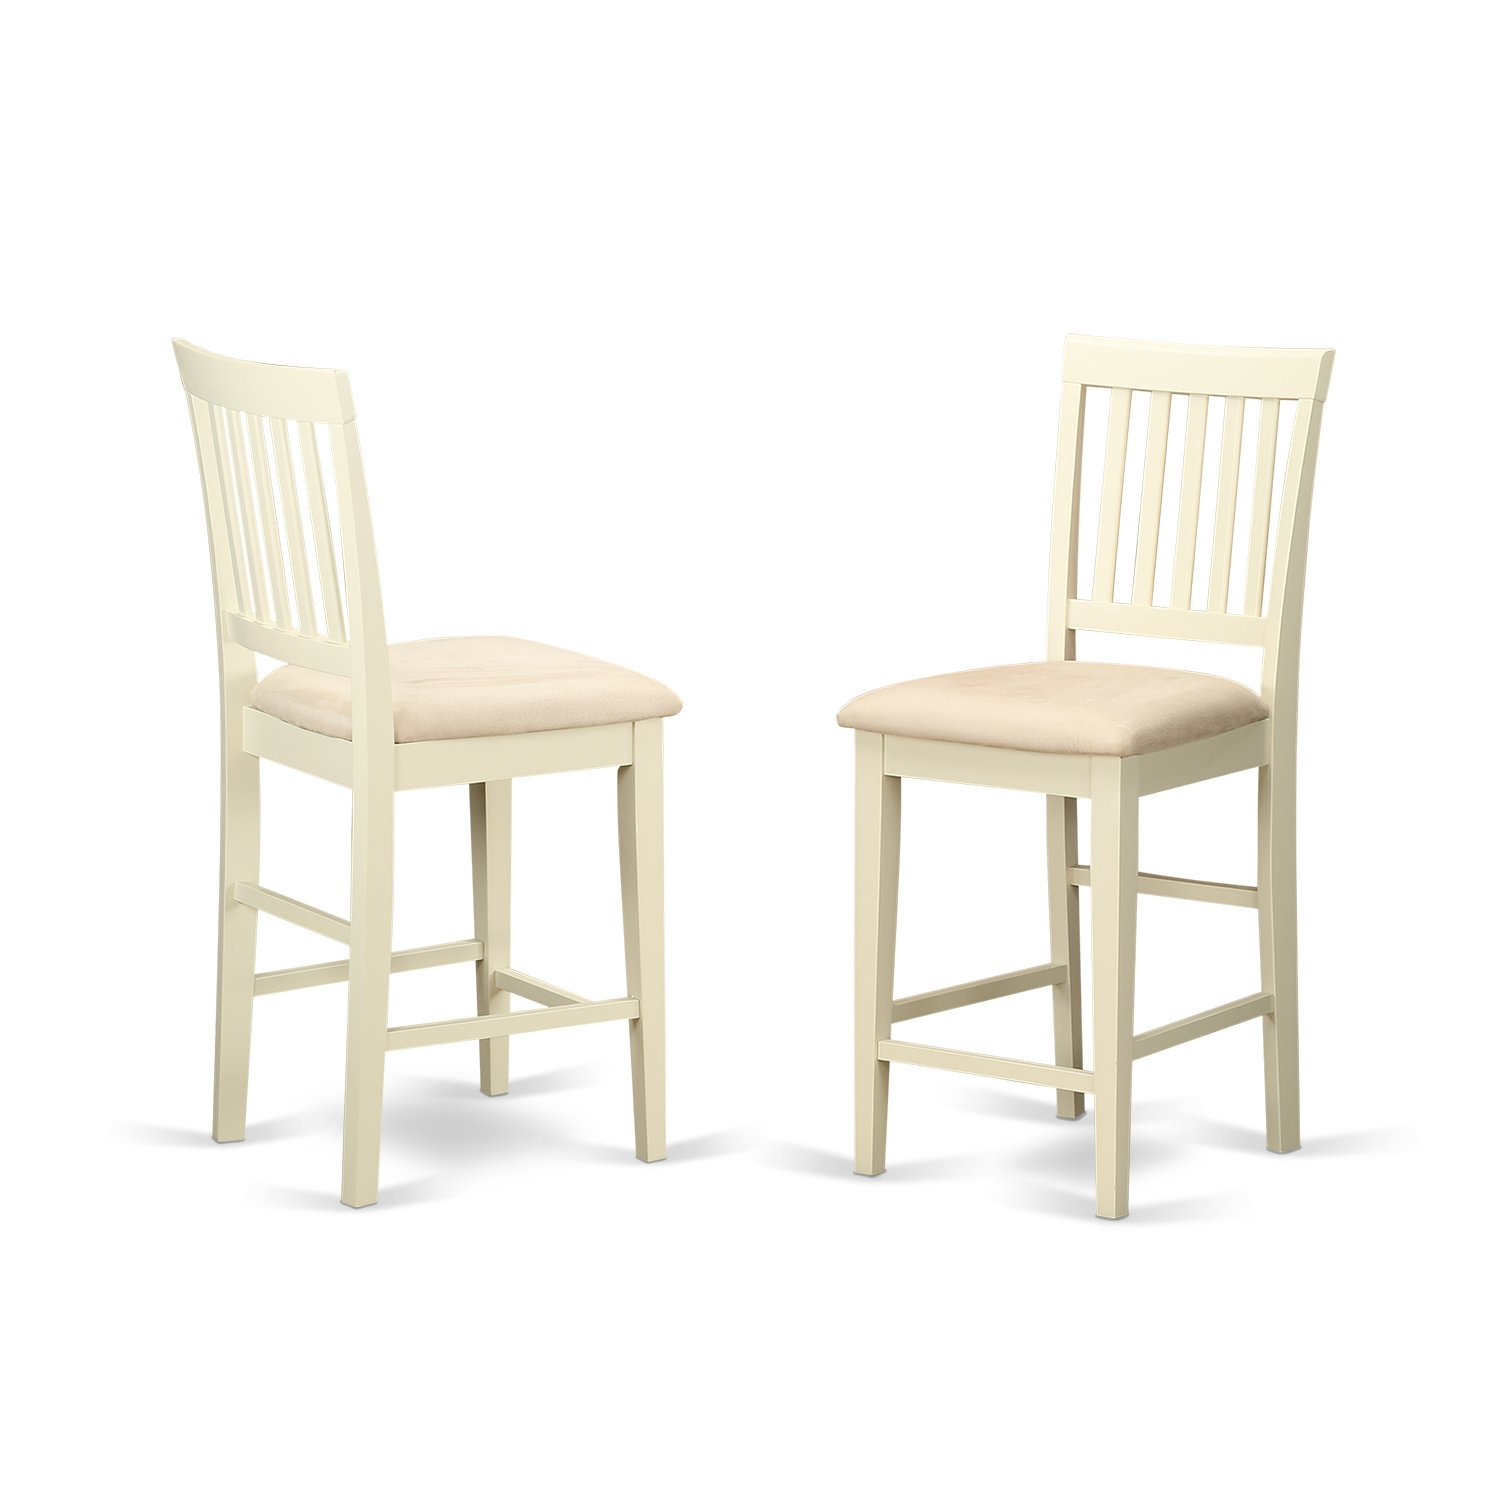 East West Furniture VNS-WHI-C Counter Height Stool Set with Cushion Seat, Buttermilk, Set of 2 by East West Furniture